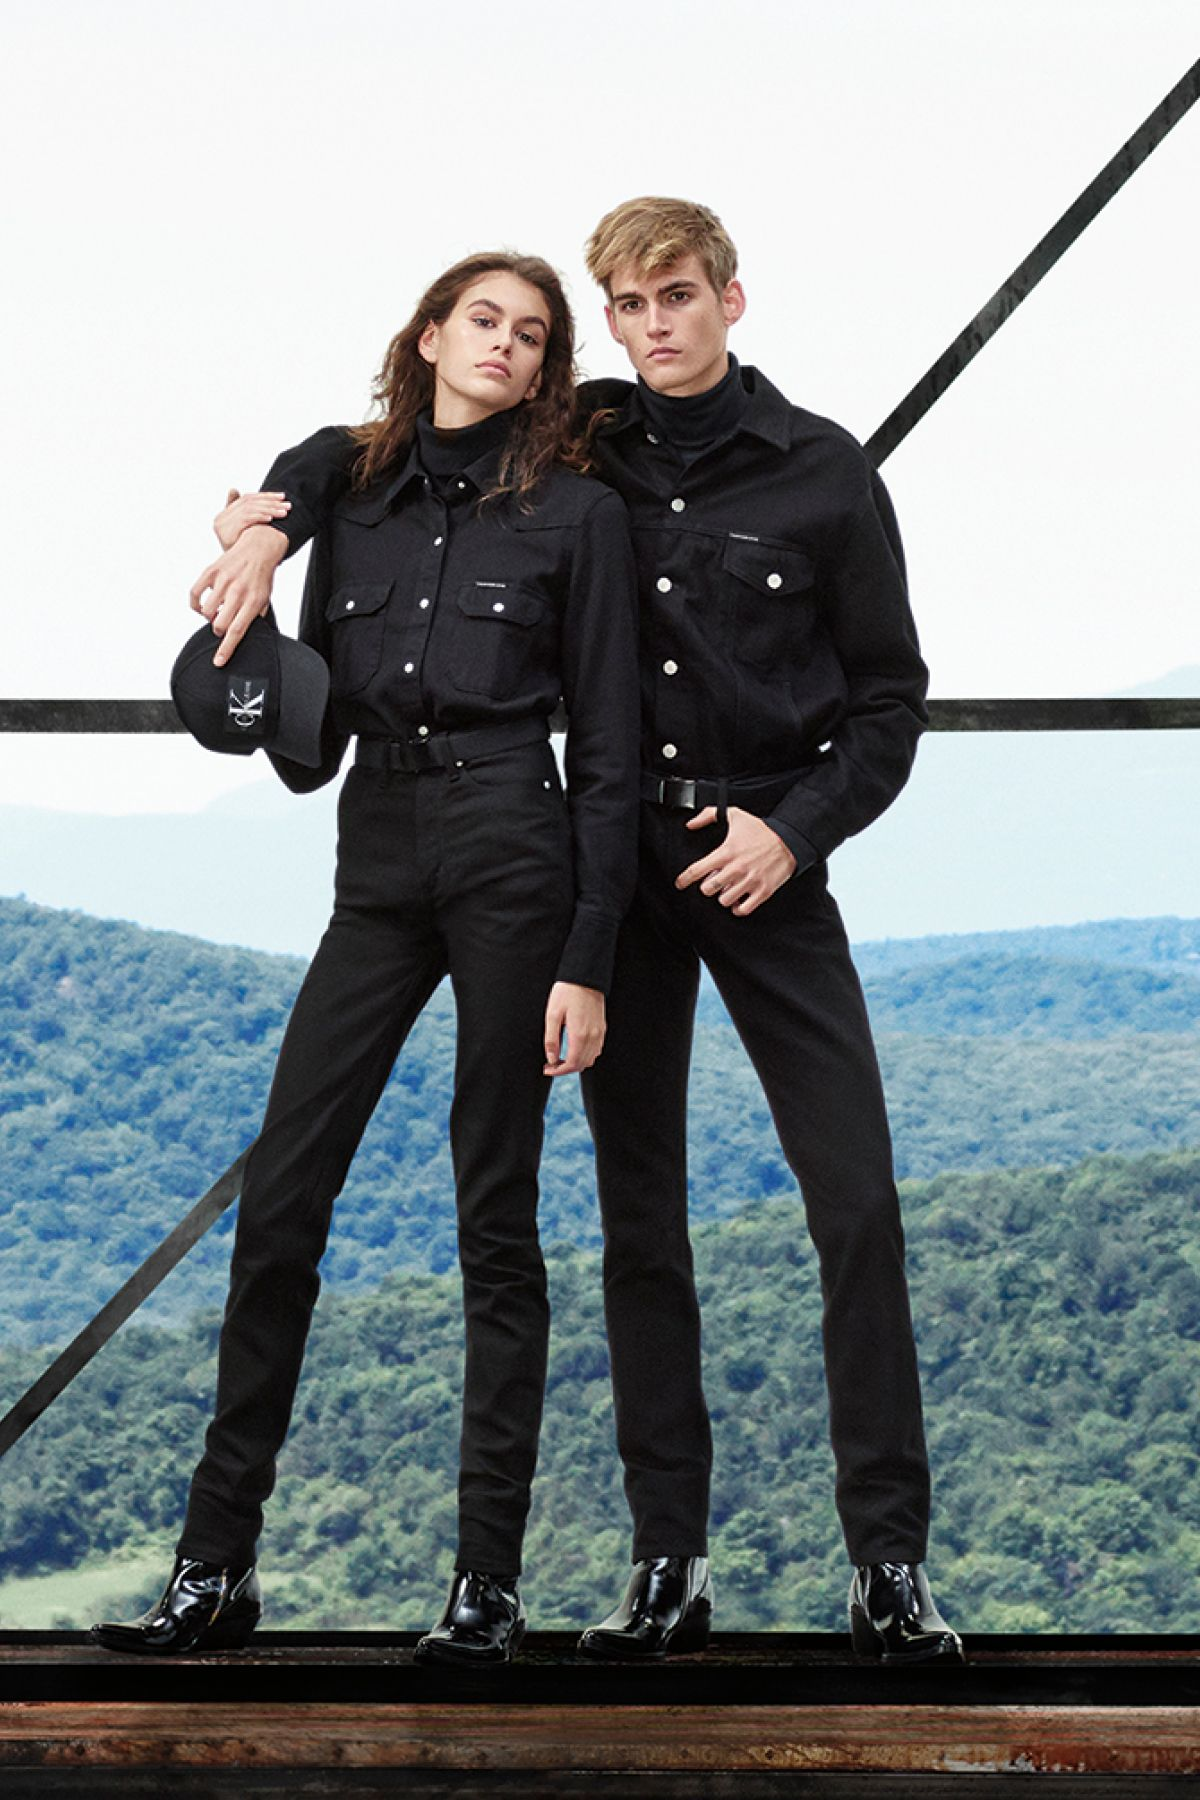 55babeb7c6c Fall 2018 denim uniform essentials from CALVIN KLEIN JEANS, as seen on Kaia  Gerber and Presley Gerber. Iconic denim is reimagined in authentic washes  and ...